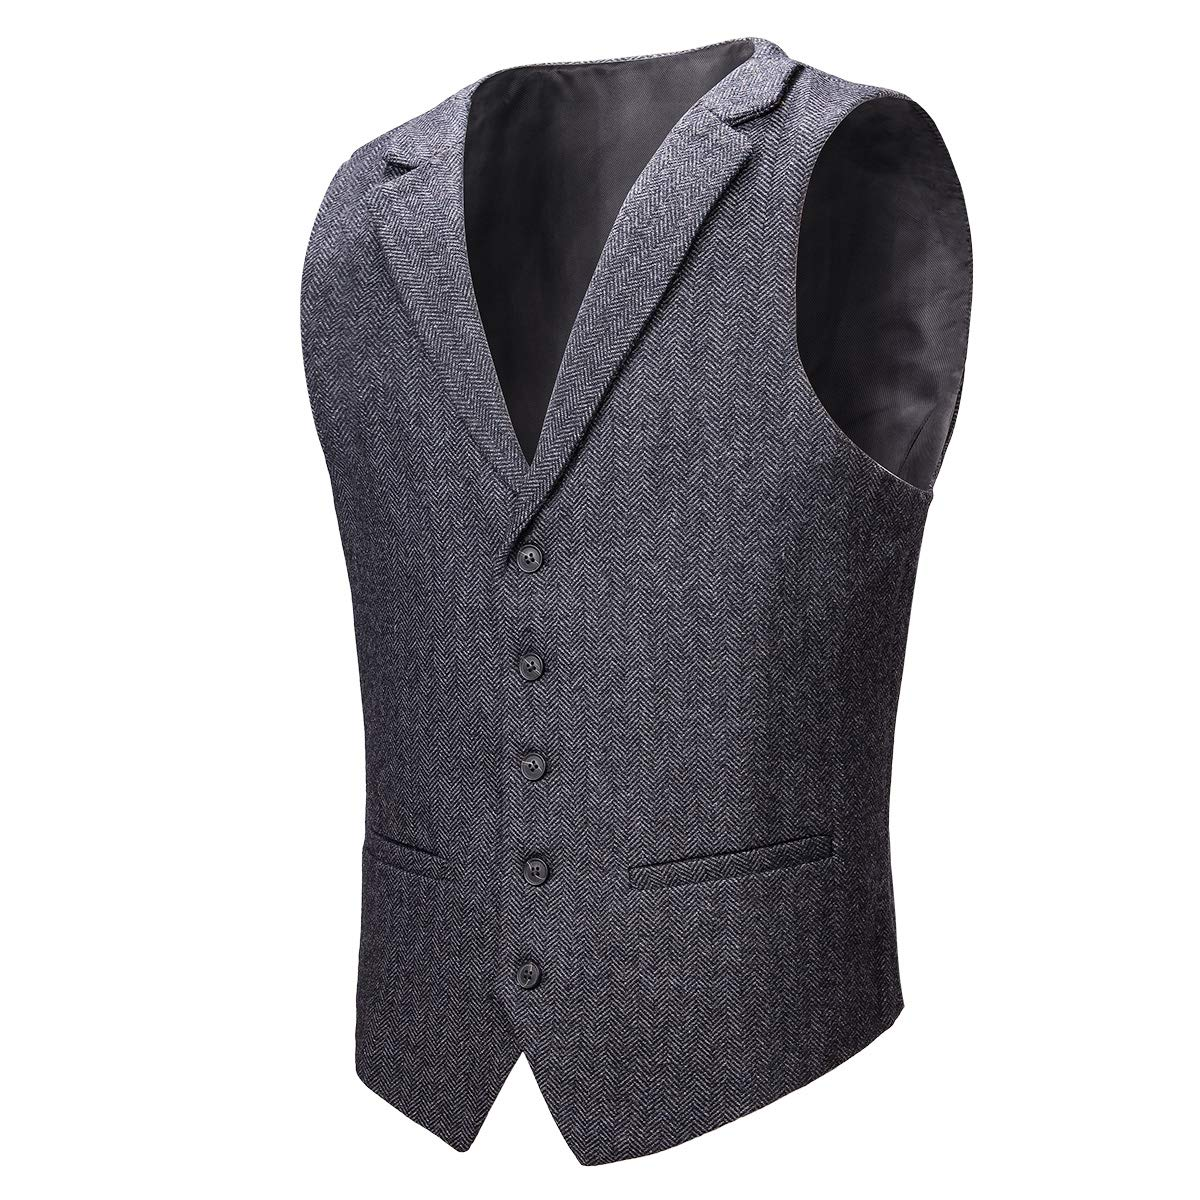 VOBOOM Mens Herringbone Tailored Collar Waistcoat Fullback Wool Tweed Suit Vest (Dark Grey, XXXL) by VOBOOM